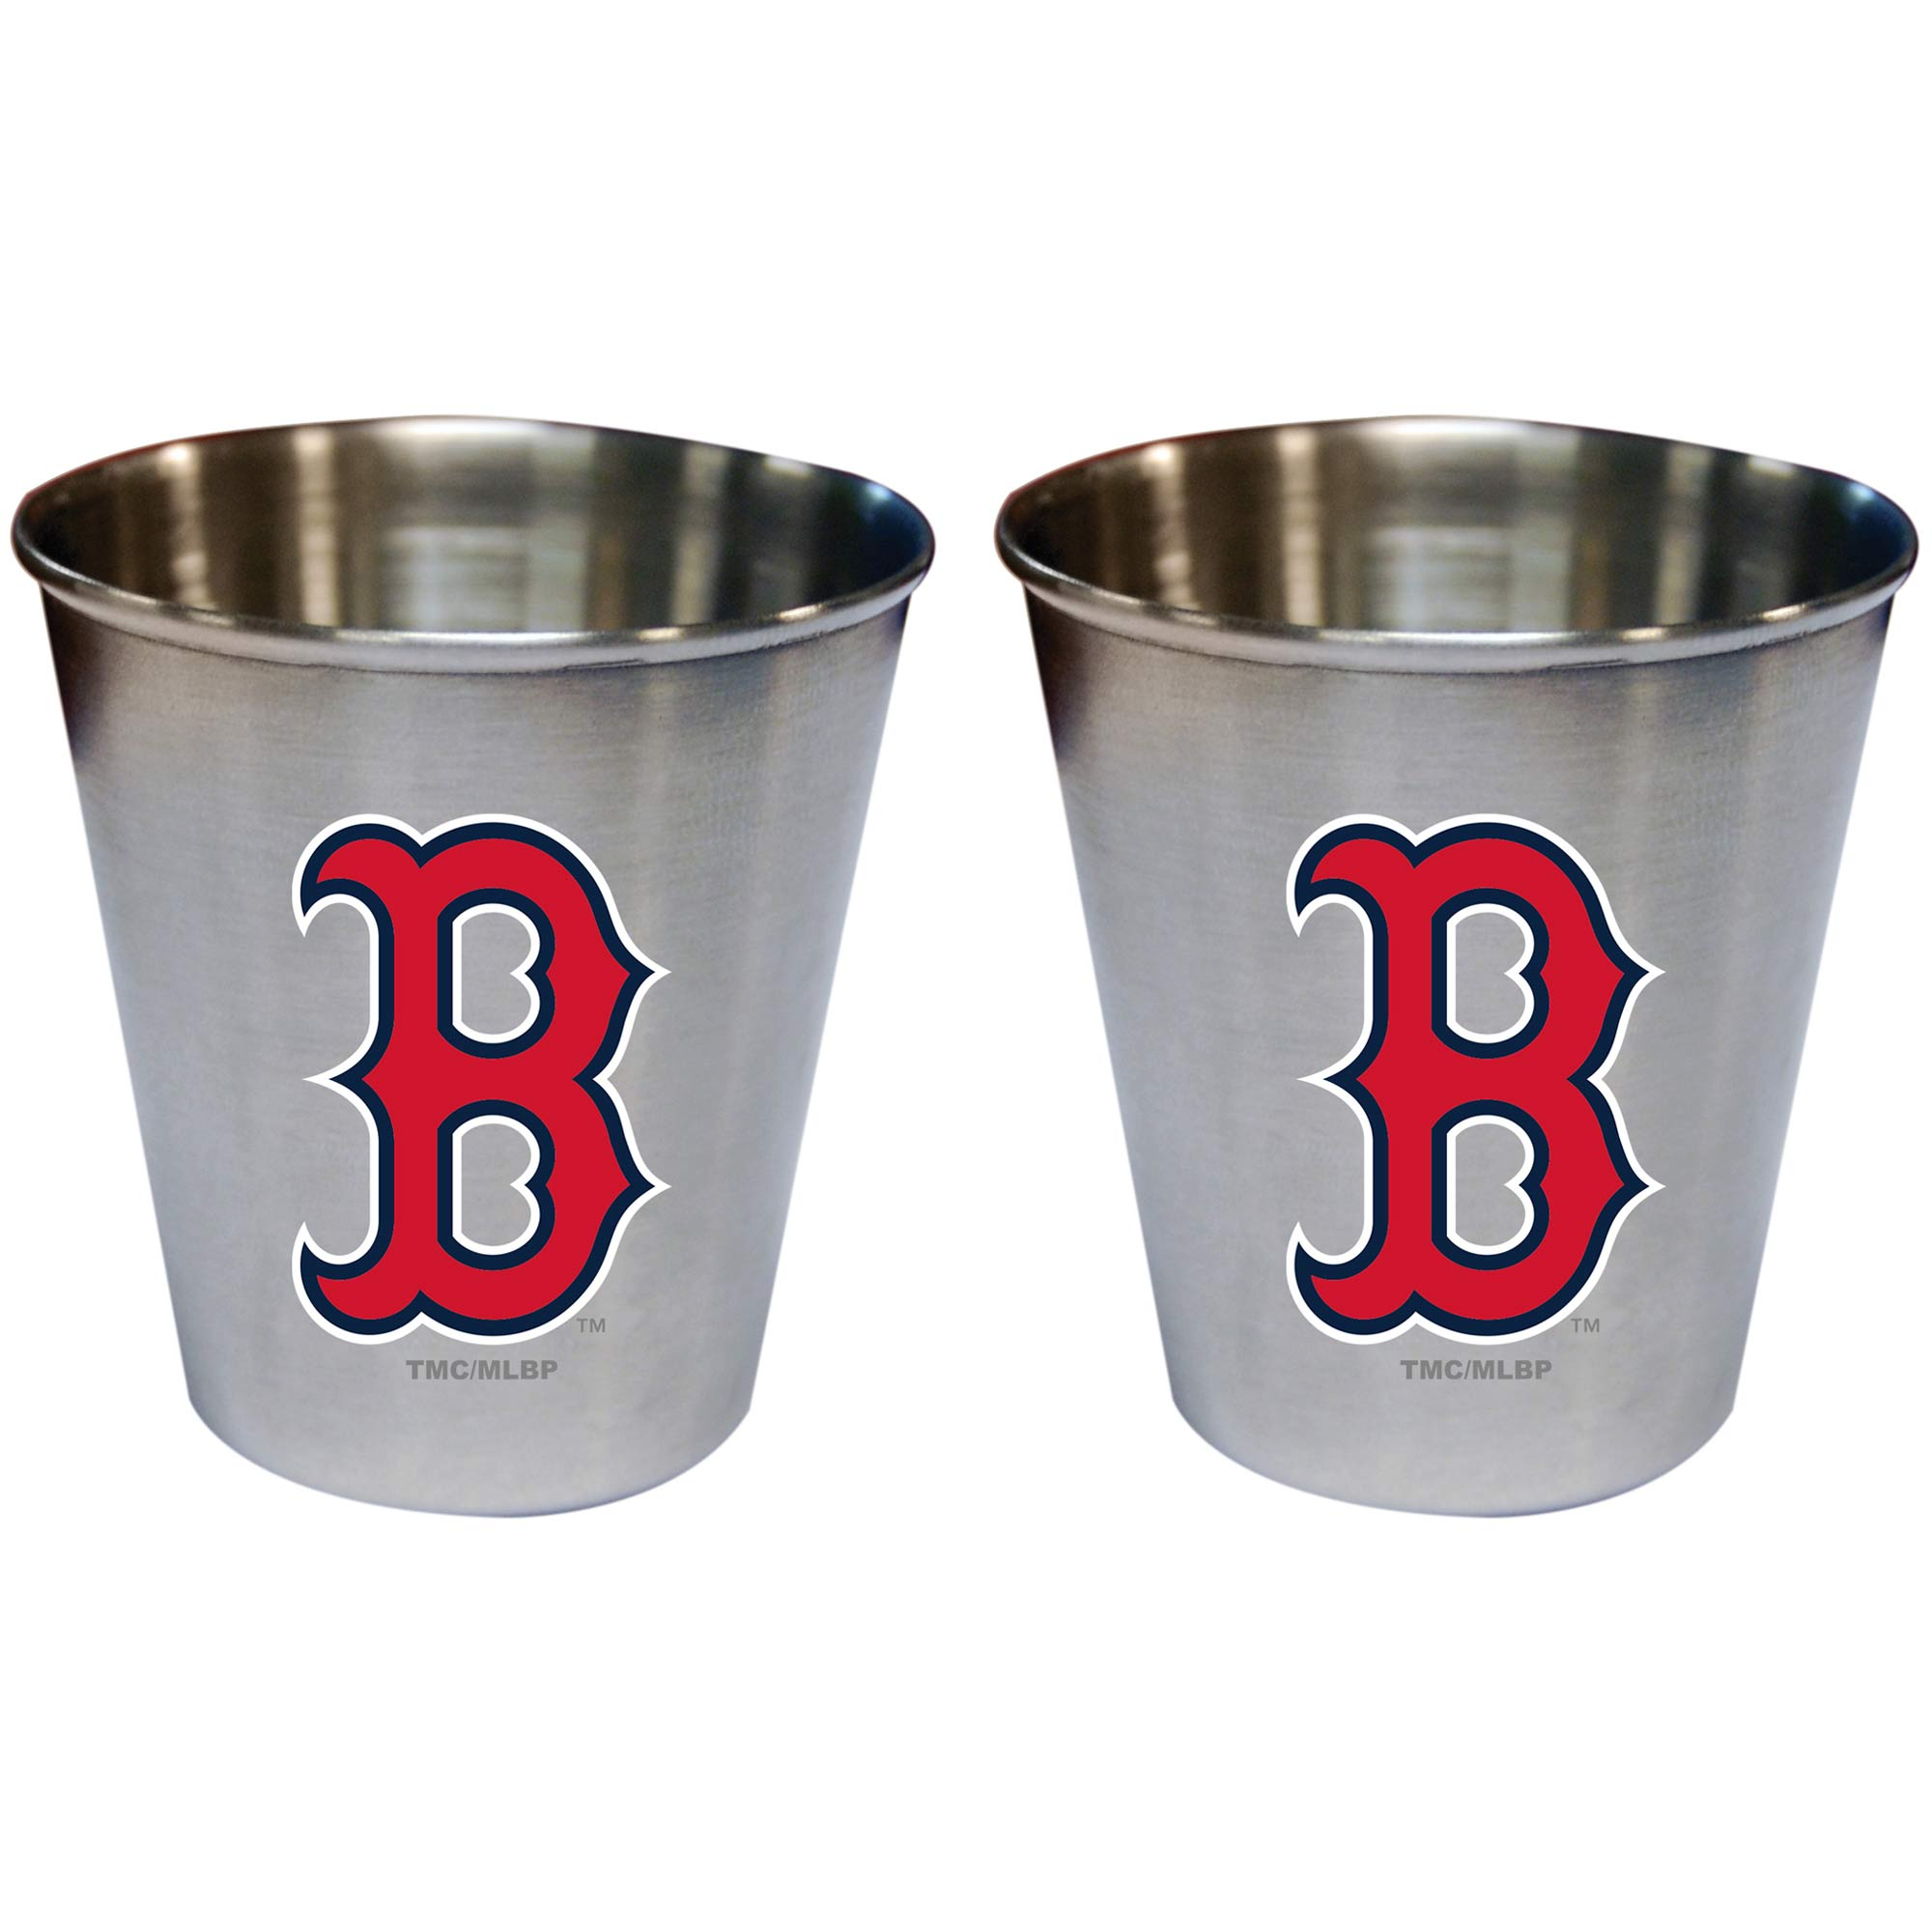 Boston Red Sox 2oz. Stainless Steel Collector Cups Two-Pack Set